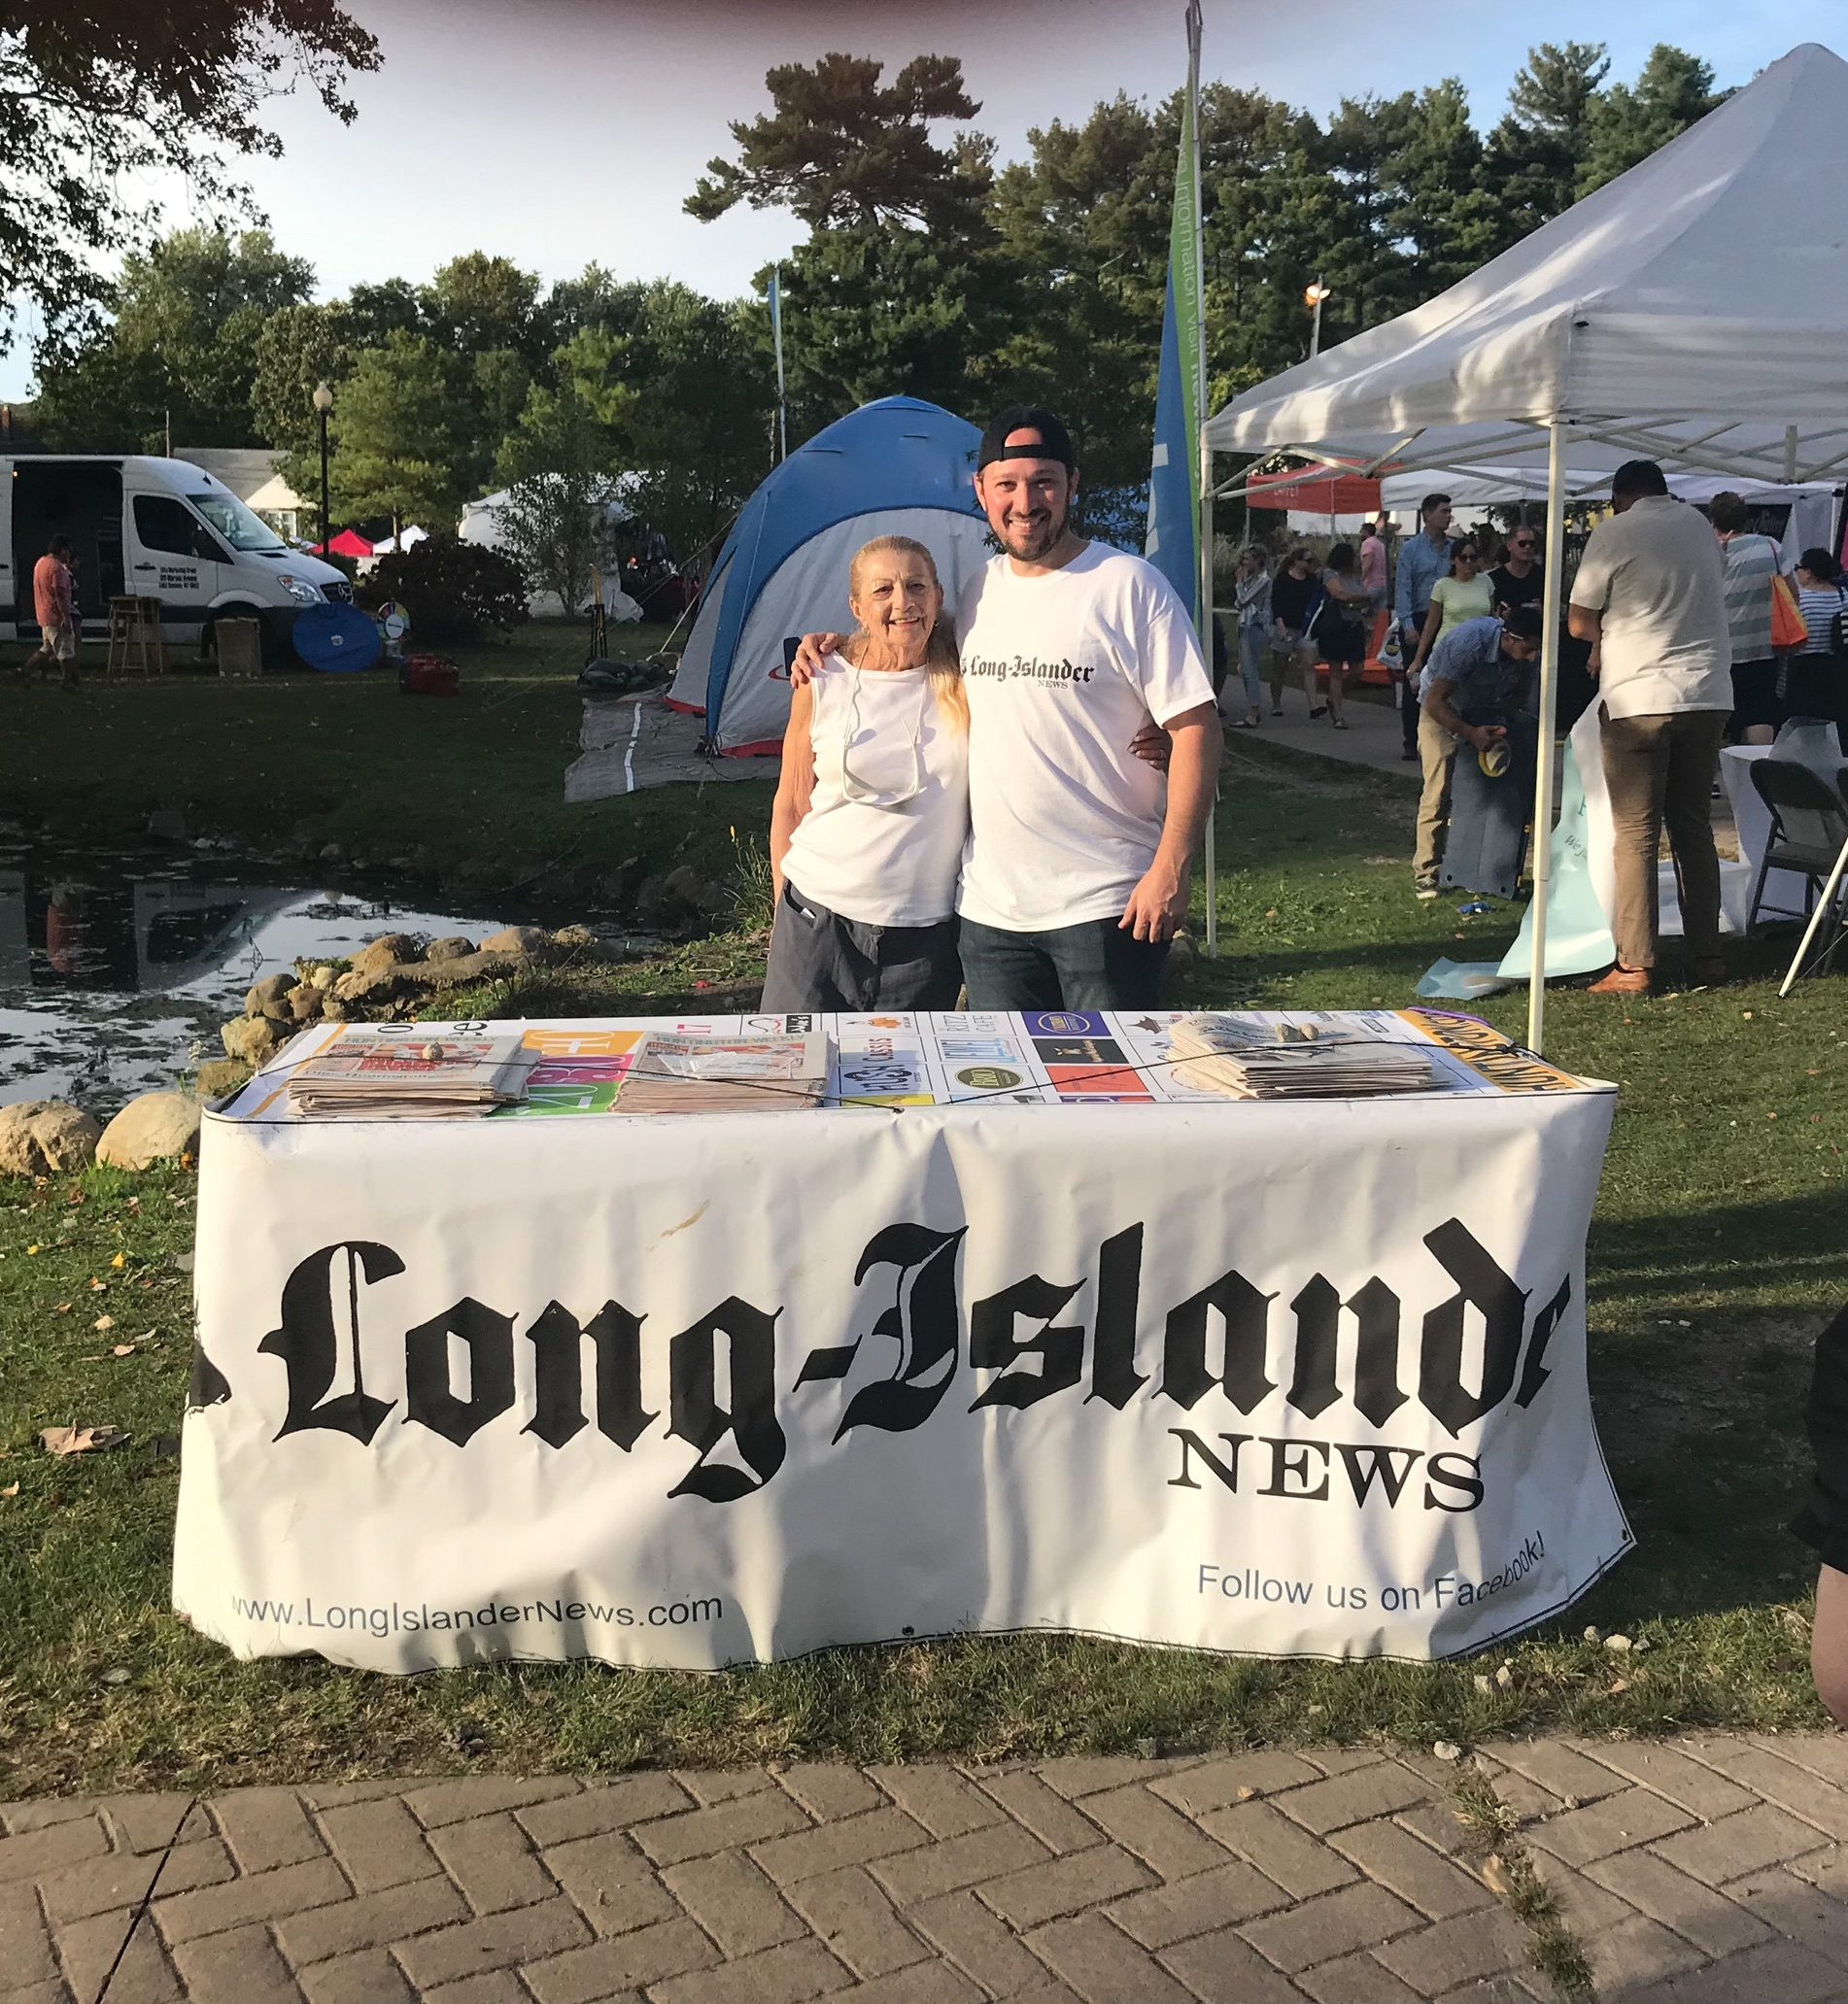 Long-Islander News digital media editor Paul Shapiro with Long-Islander newspaper subscriber Roberta Palmer.   Long Islander News Photo/Paul Shapiro